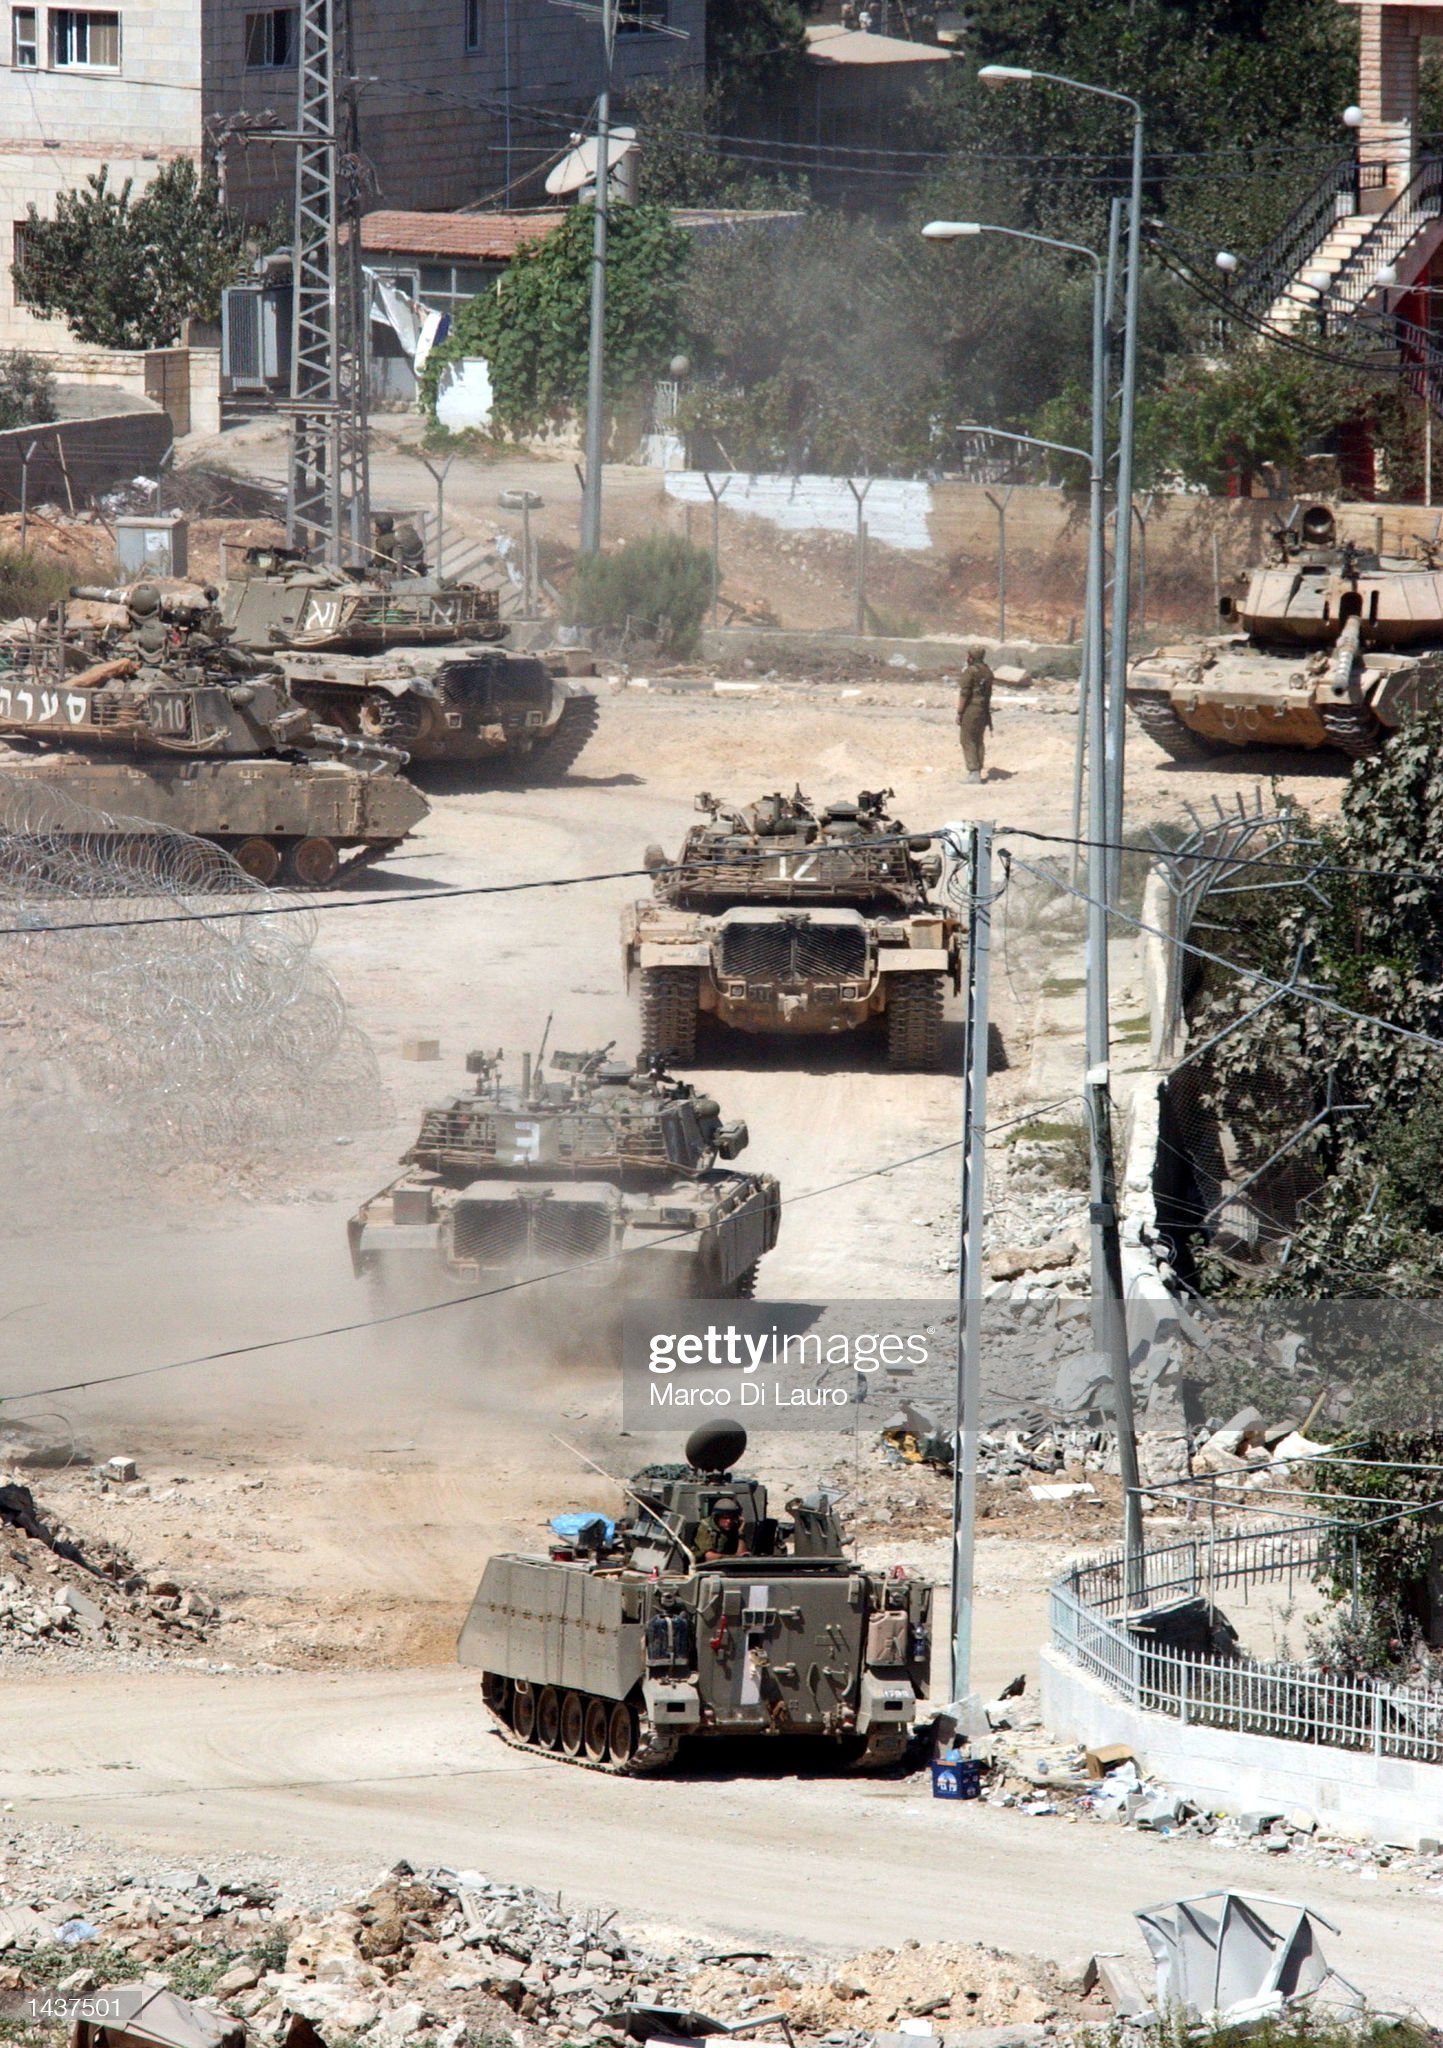 https://media.gettyimages.com/photos/an-israeli-tanks-line-up-outside-palestinian-leader-yasser-arafats-picture-id1437501?s=2048x2048